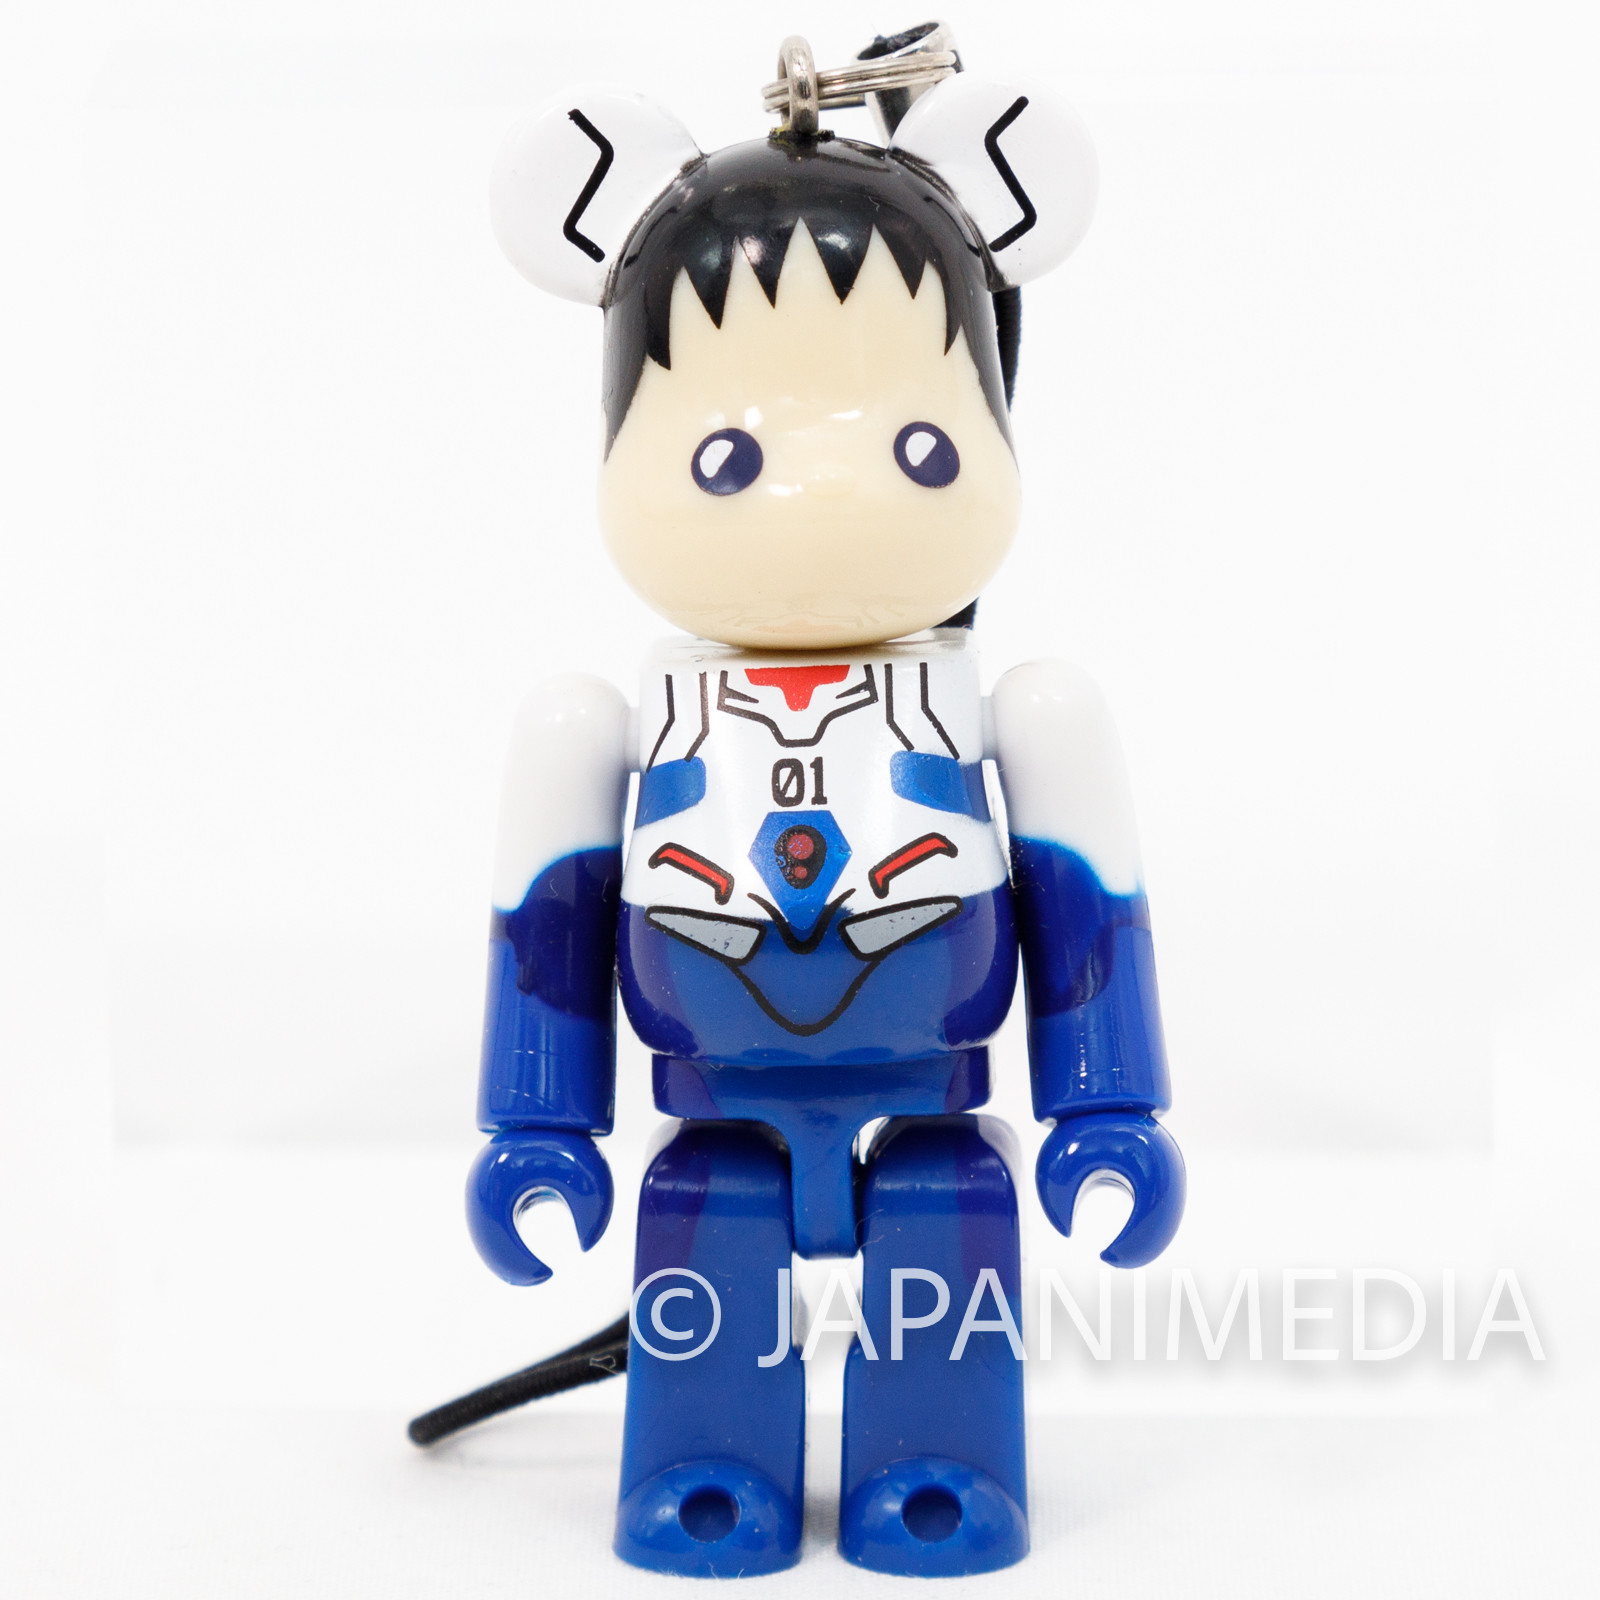 Evangelion Shinji Ikari Be@rbrick Bearbrick Mini Figure Strap Medicom Toy